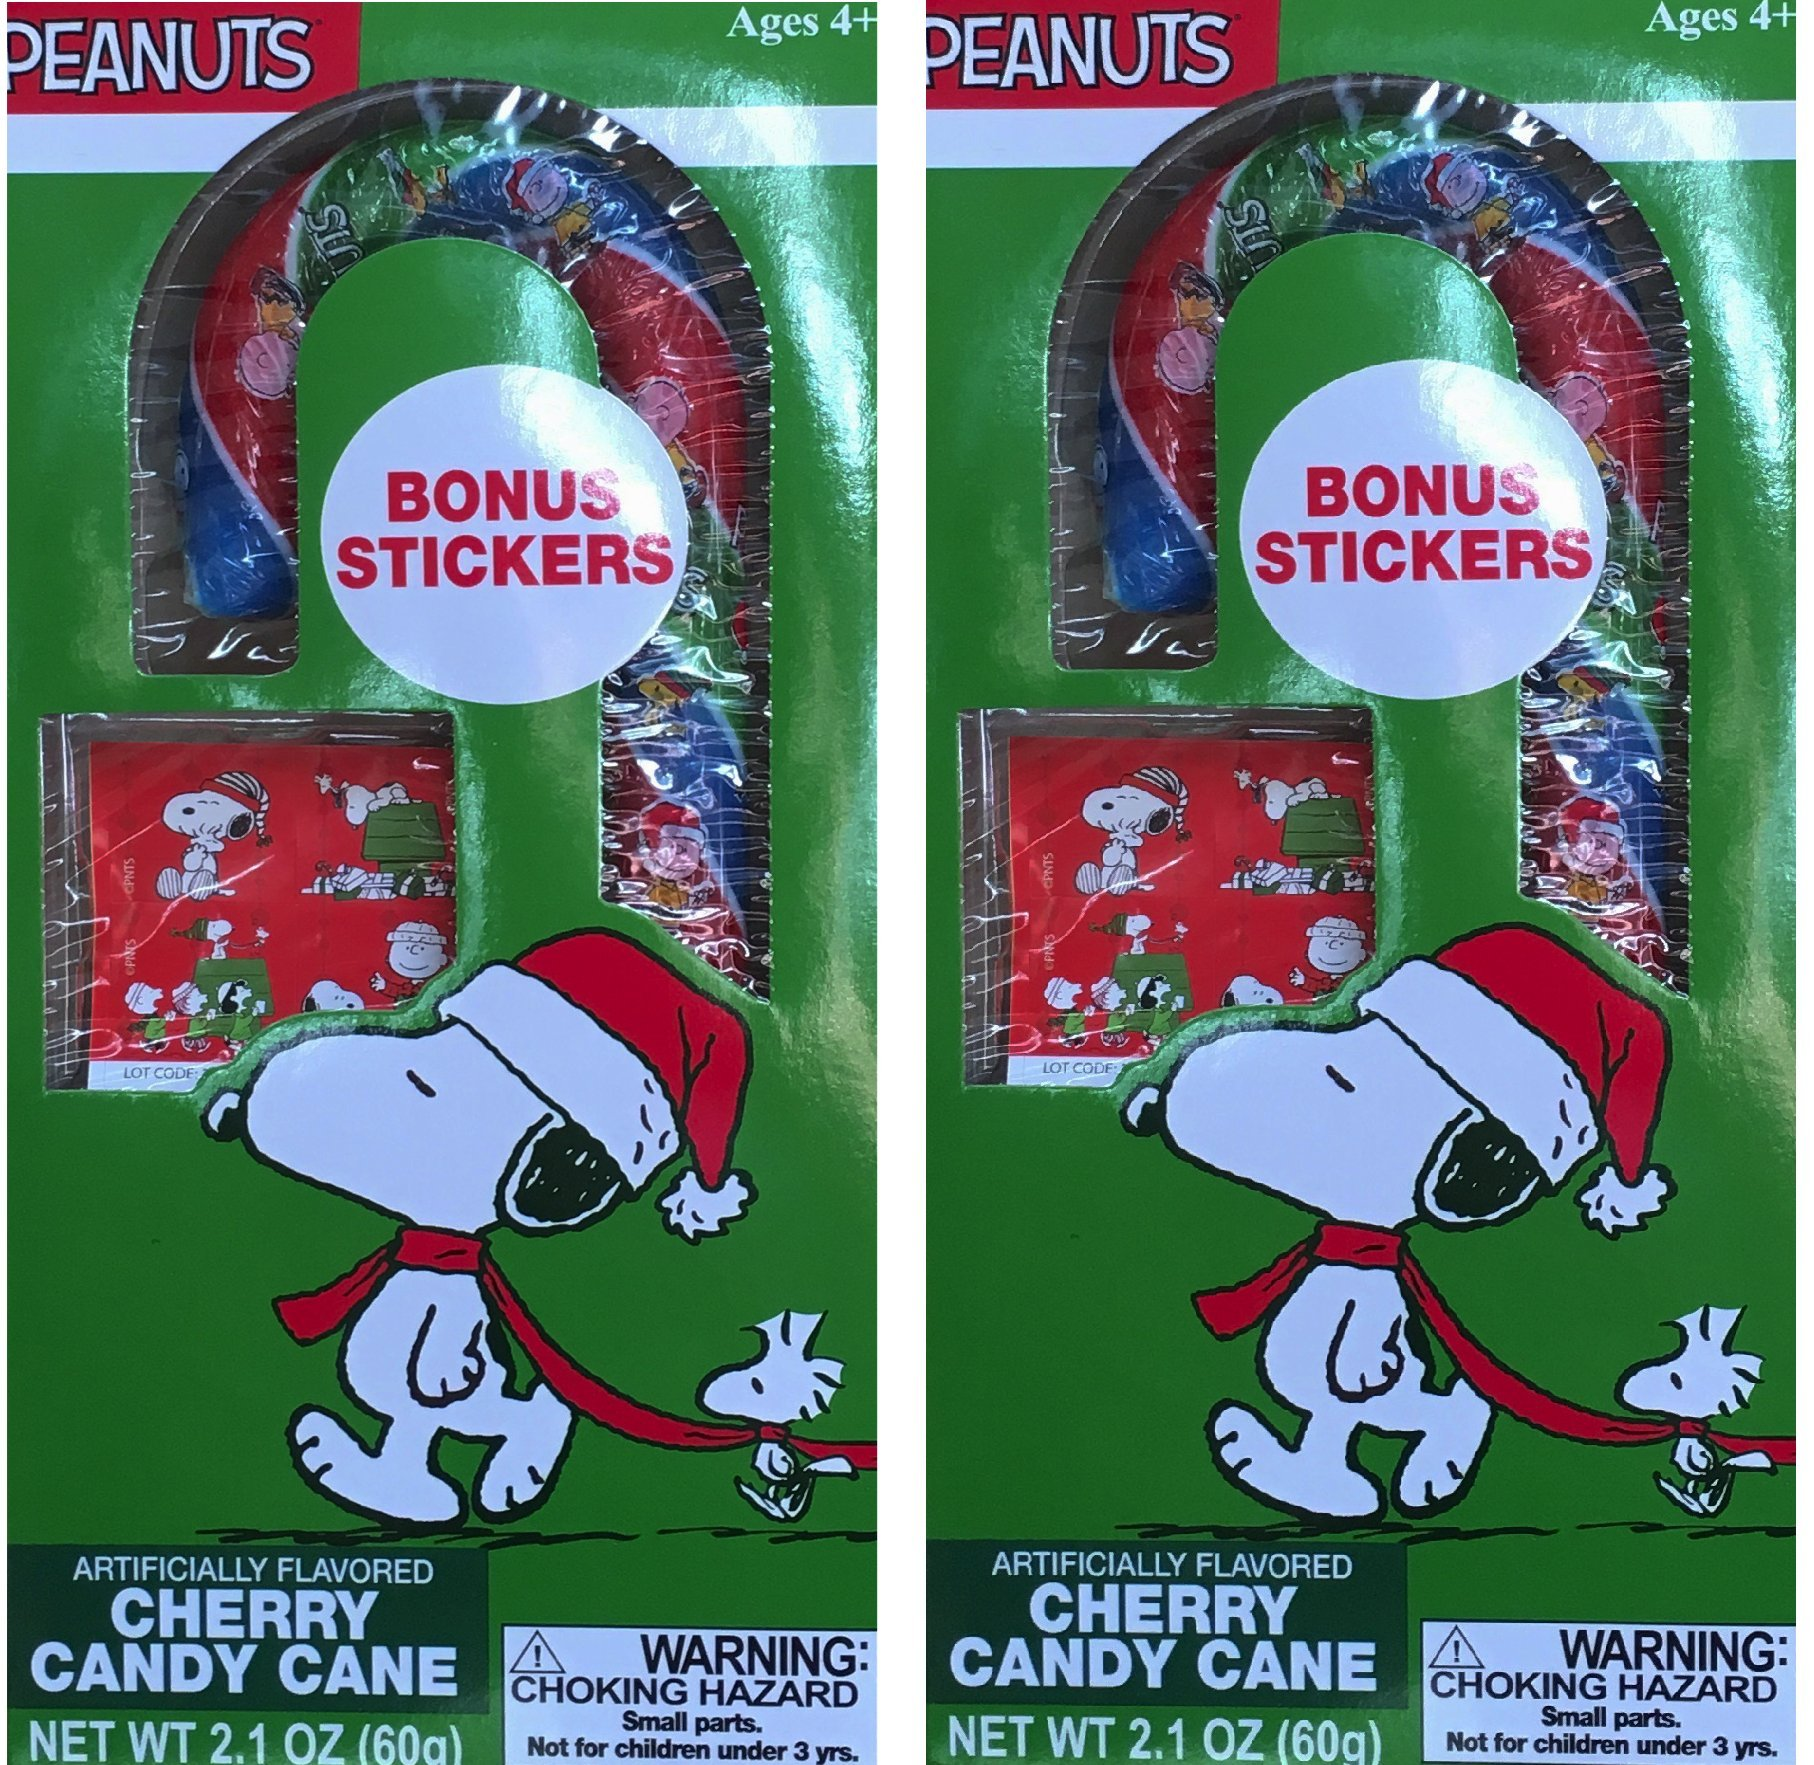 Snoopy and Peanuts Cherry Artifically Flavored Christmas Candy Cane Gift Set Net Wt 2.1 Oz (Pack of 2)